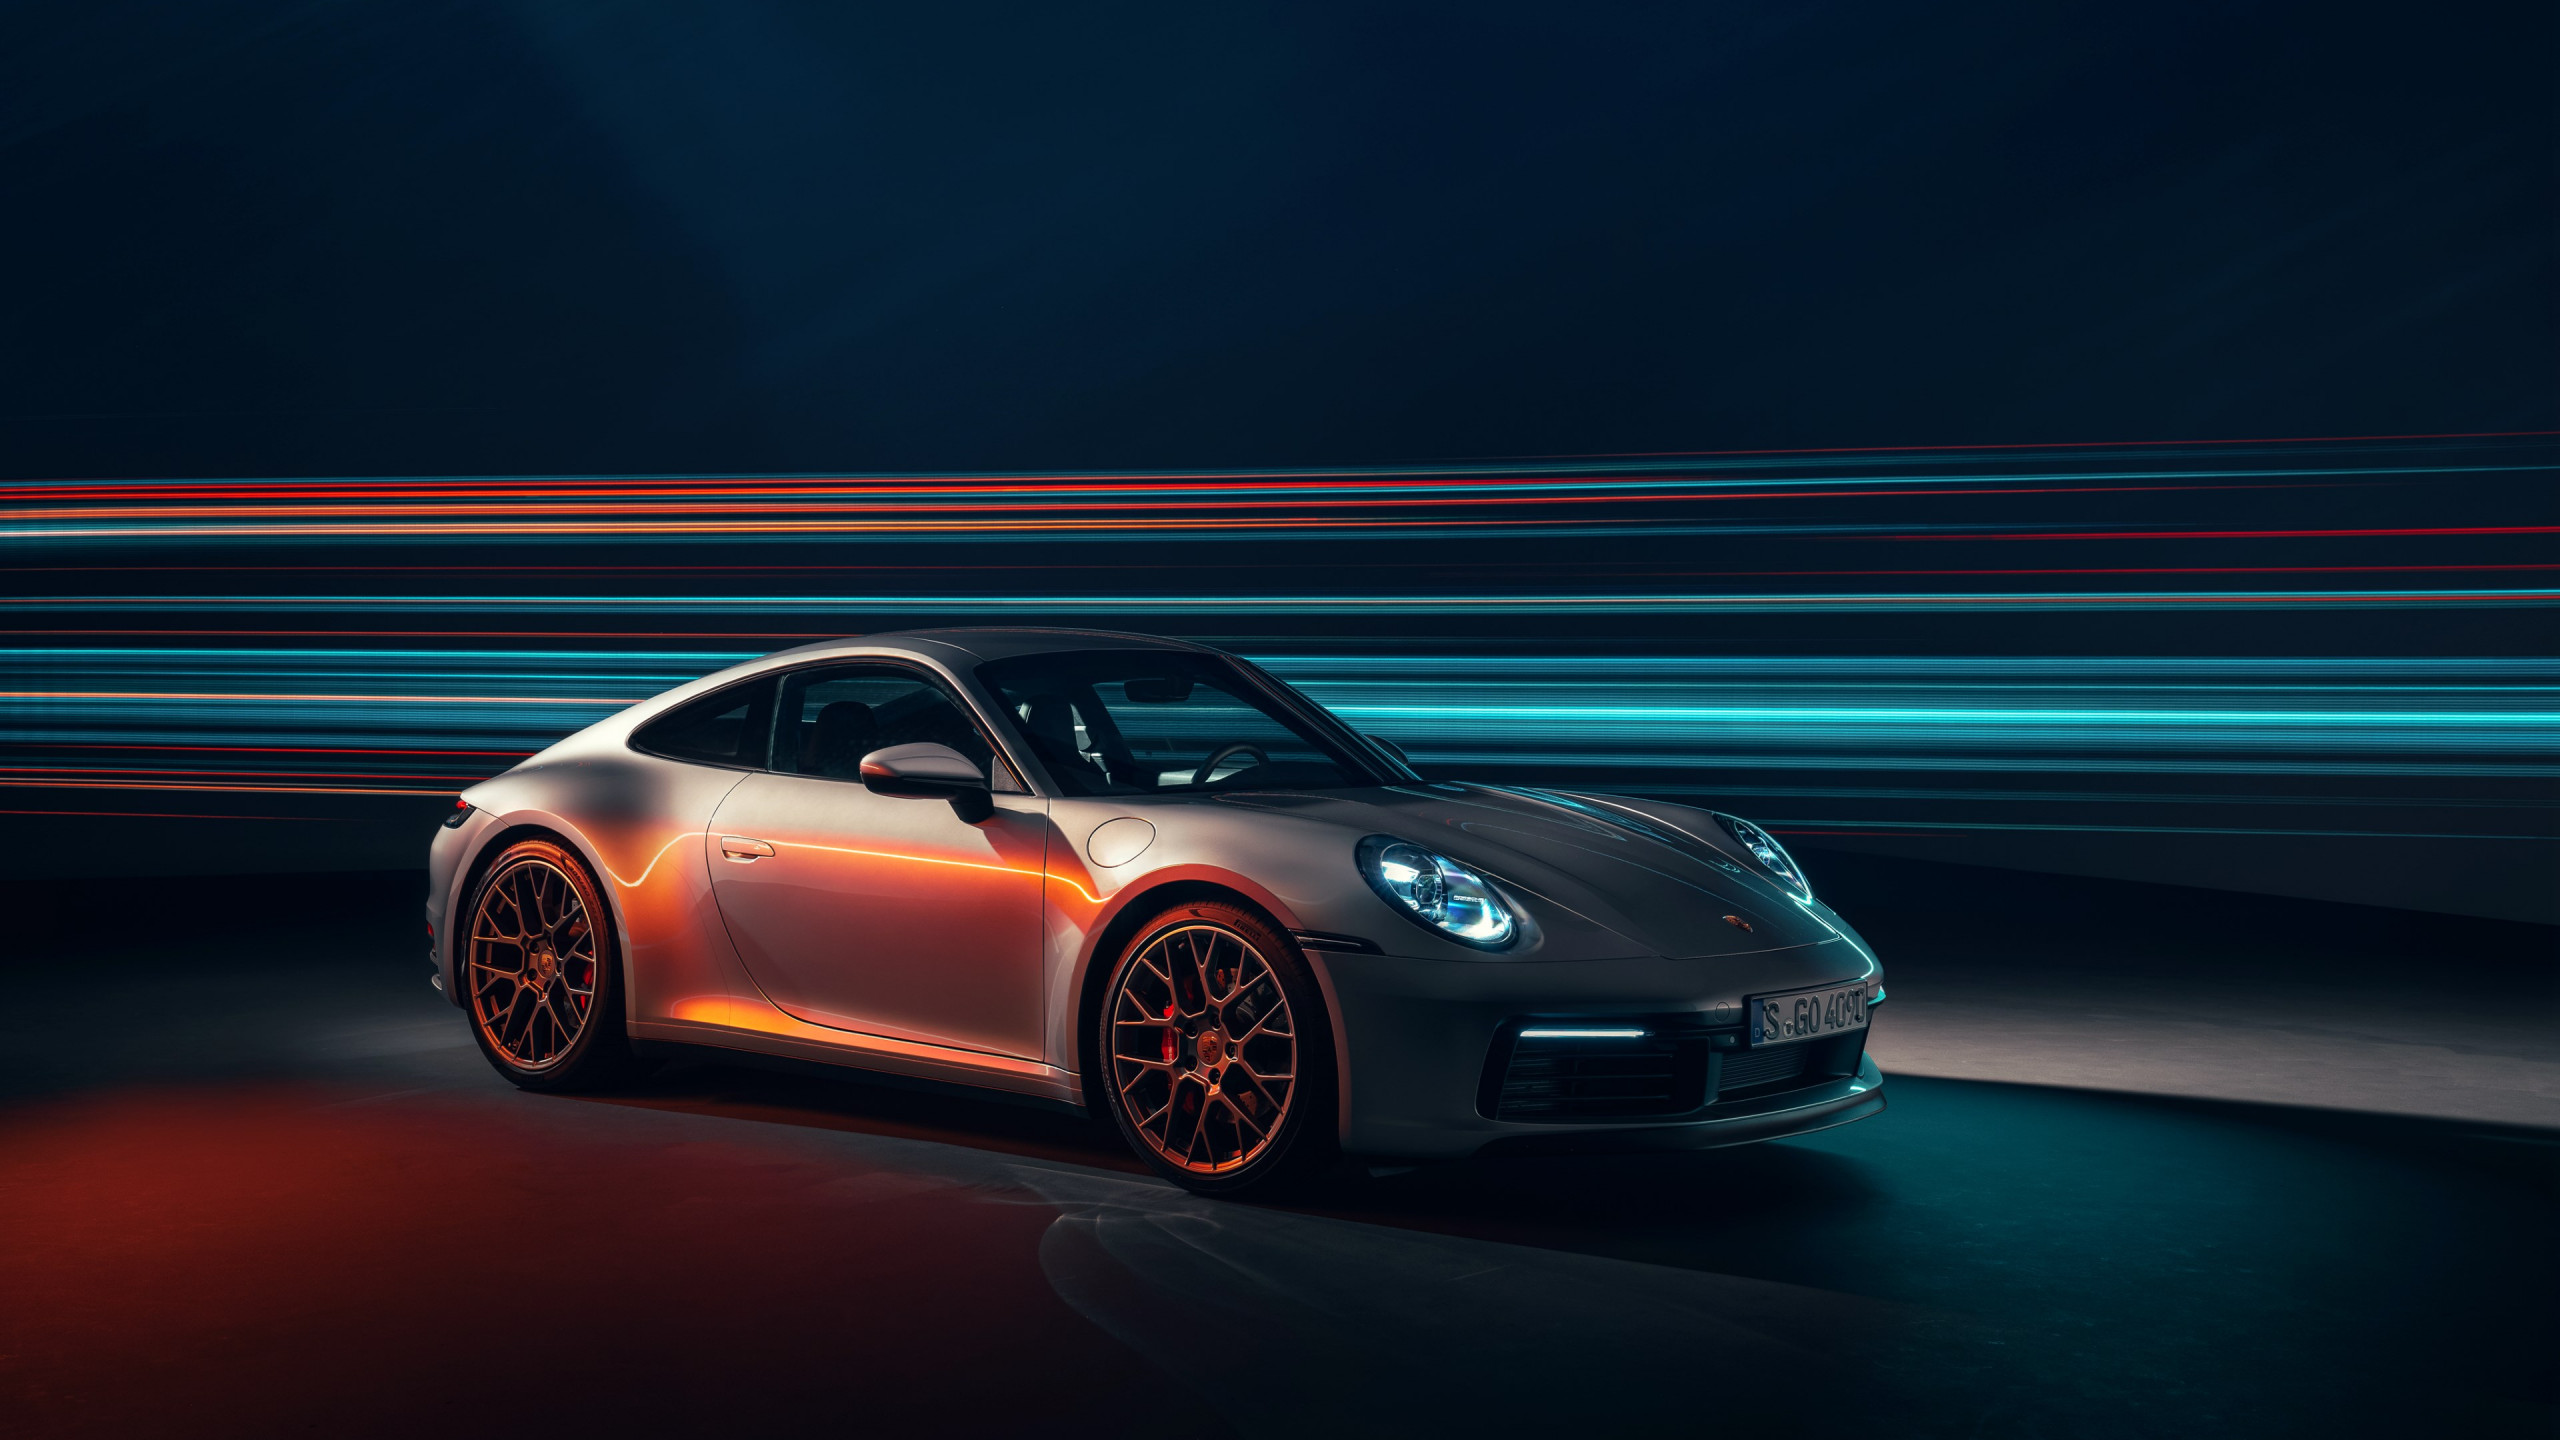 Porsche 911 Carrera 4S wallpaper 2560x1440